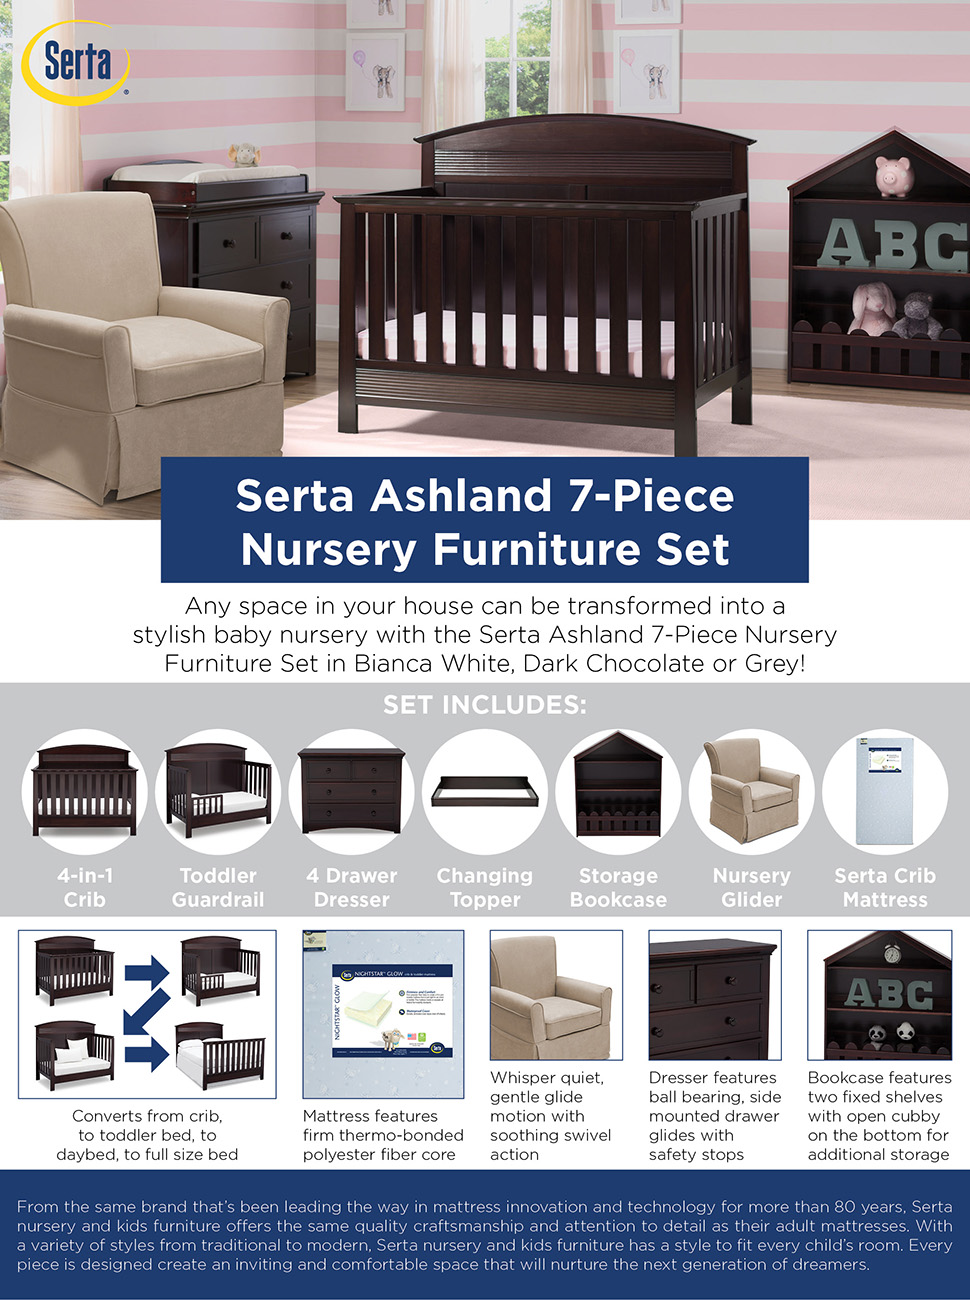 stylish nursery furniture. Any Space In Your House Can Be Transformed Into A Stylish Baby Nursery With The Serta Ashland 7-Piece Furniture Set Bianca White, Dark Chocolate